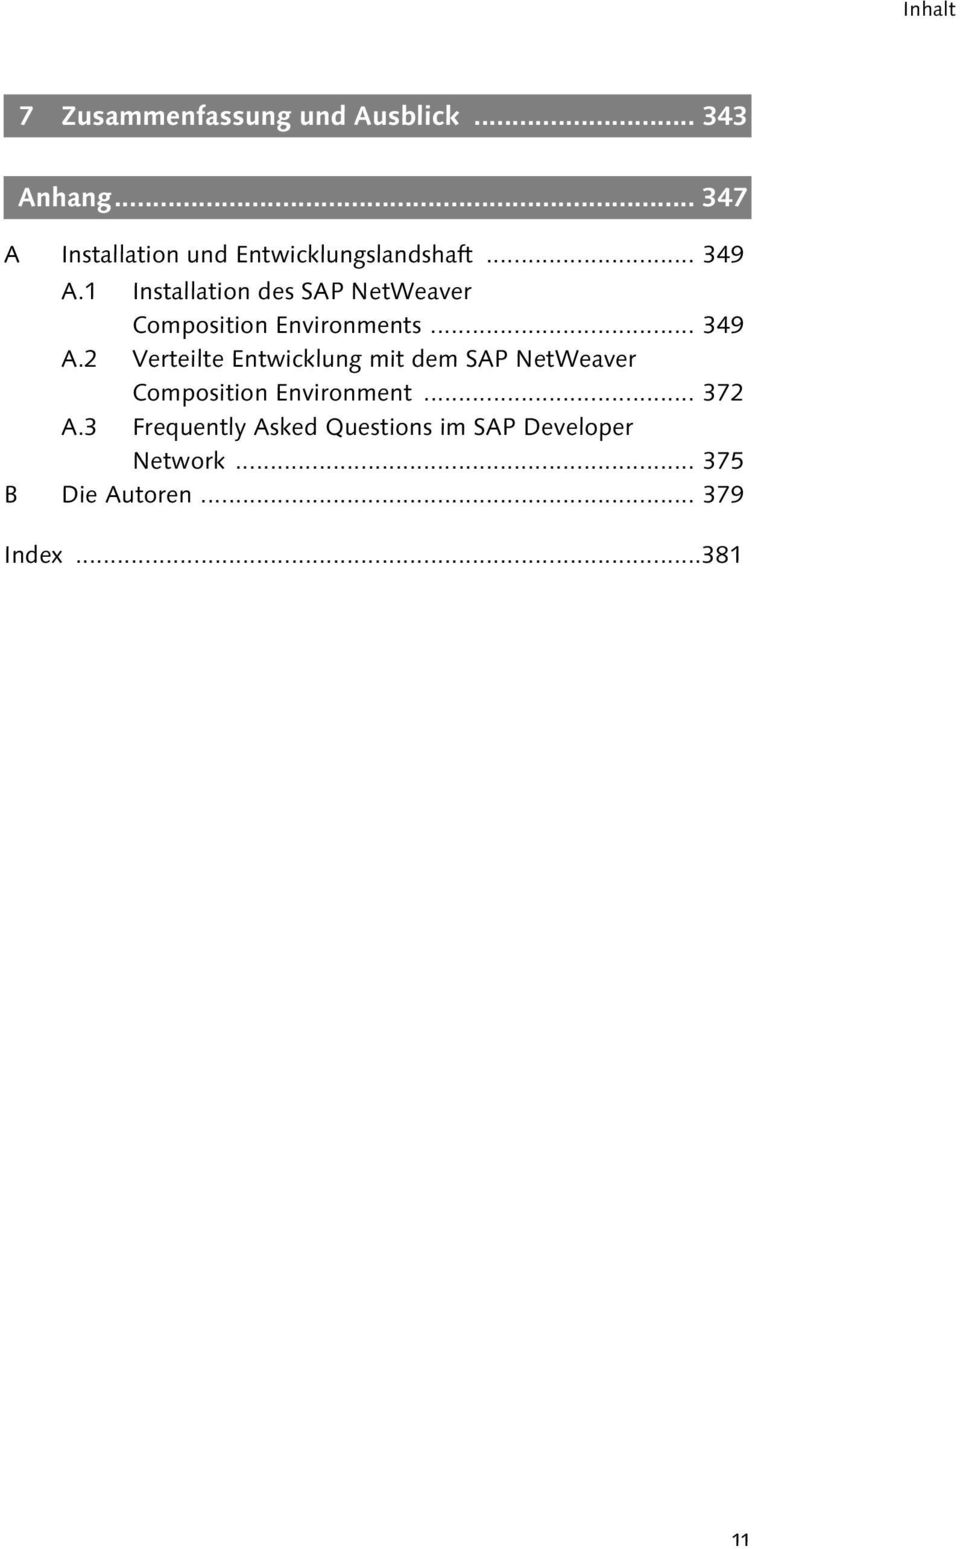 1 Installation des SAP NetWeaver Composition Environments... 349 A.